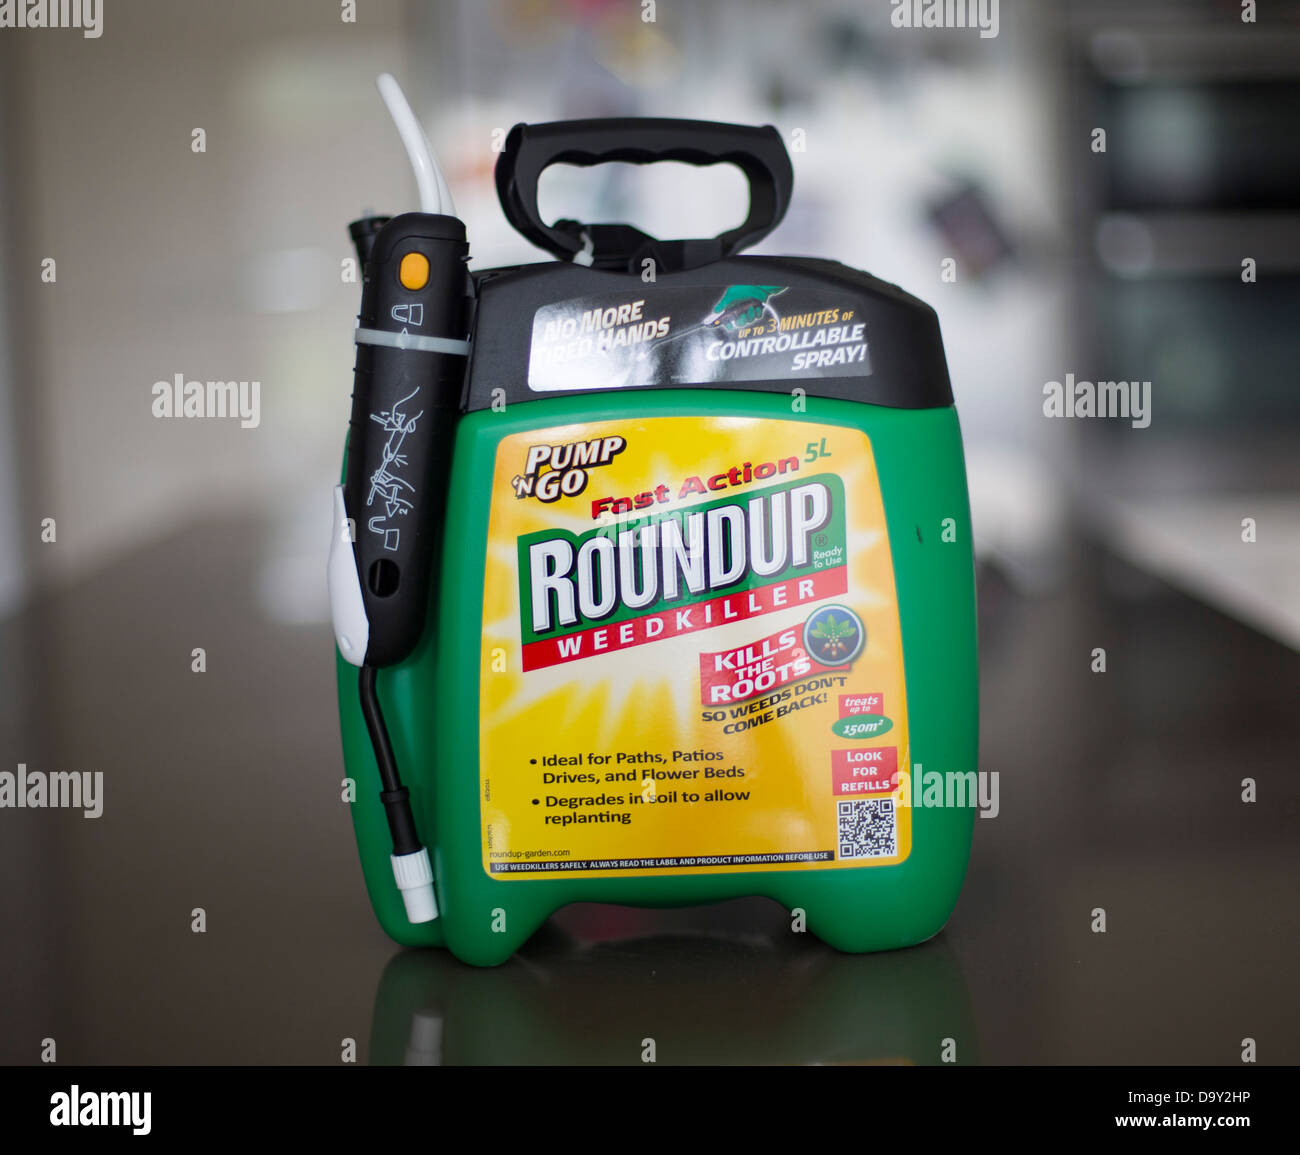 Weeds in flower beds spray - Round Up Roundup Weed Killer Spray Monsanto Stock Image